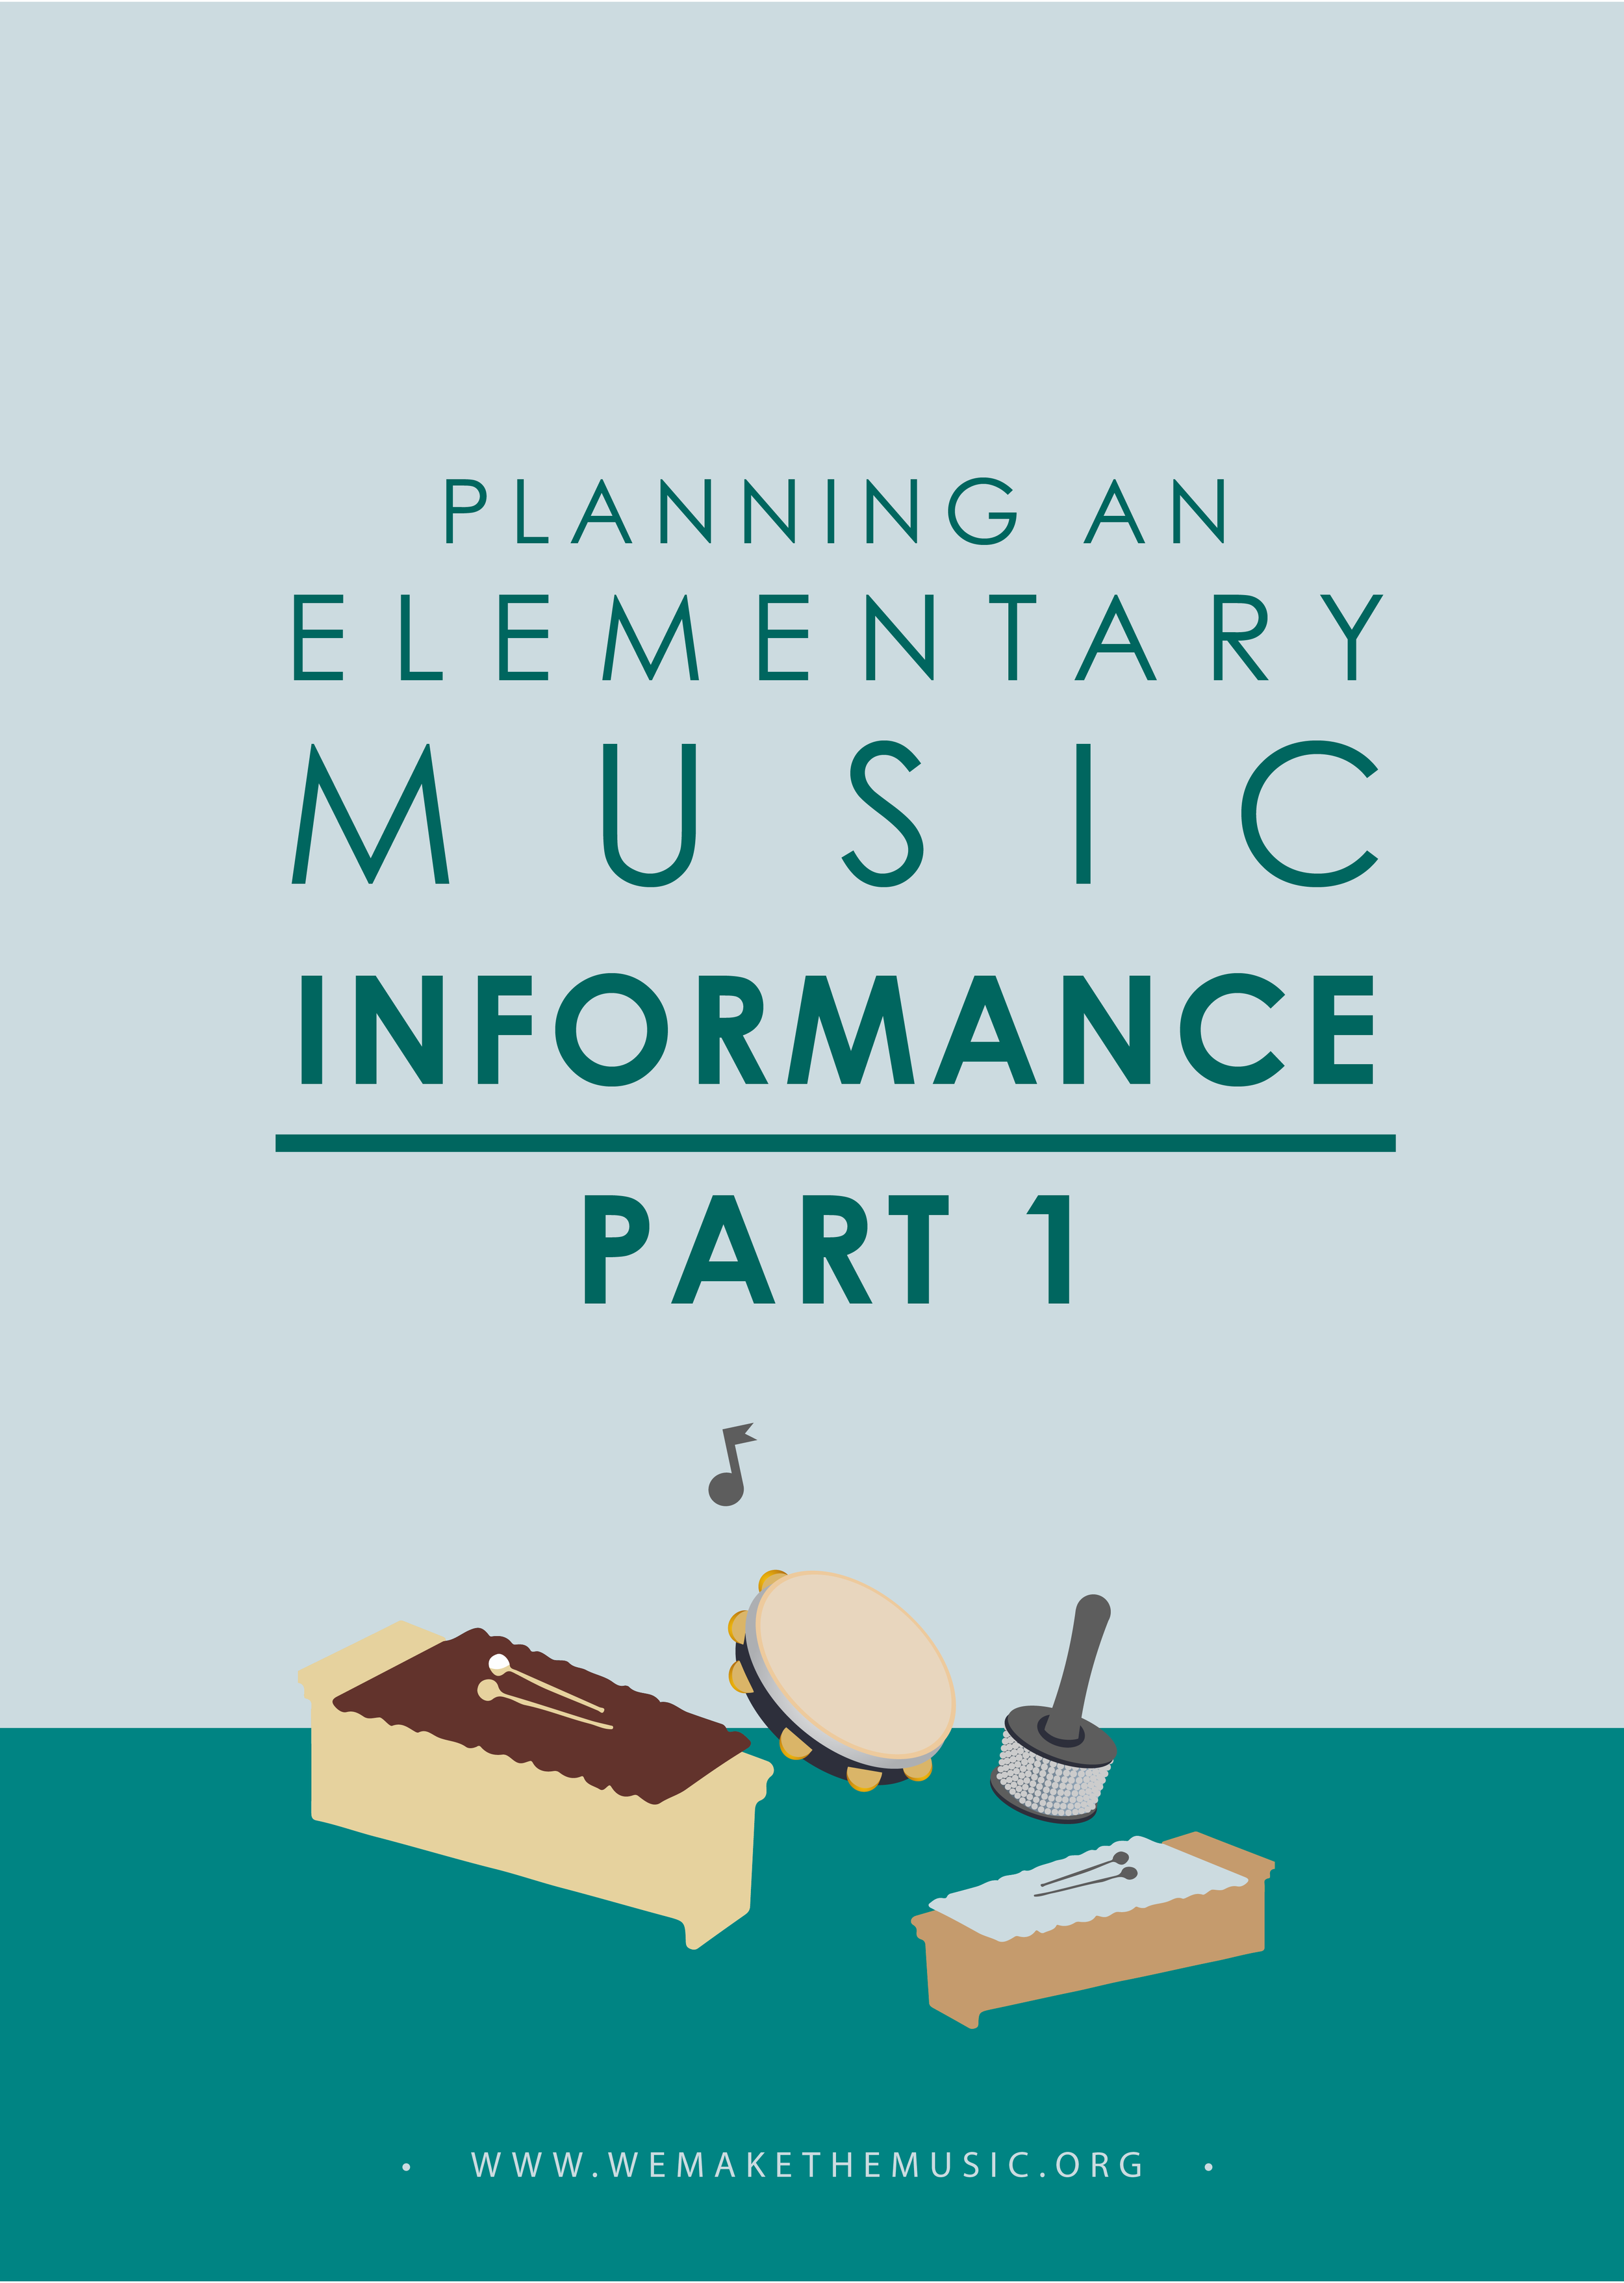 How to Plan an Elementary Music Informance